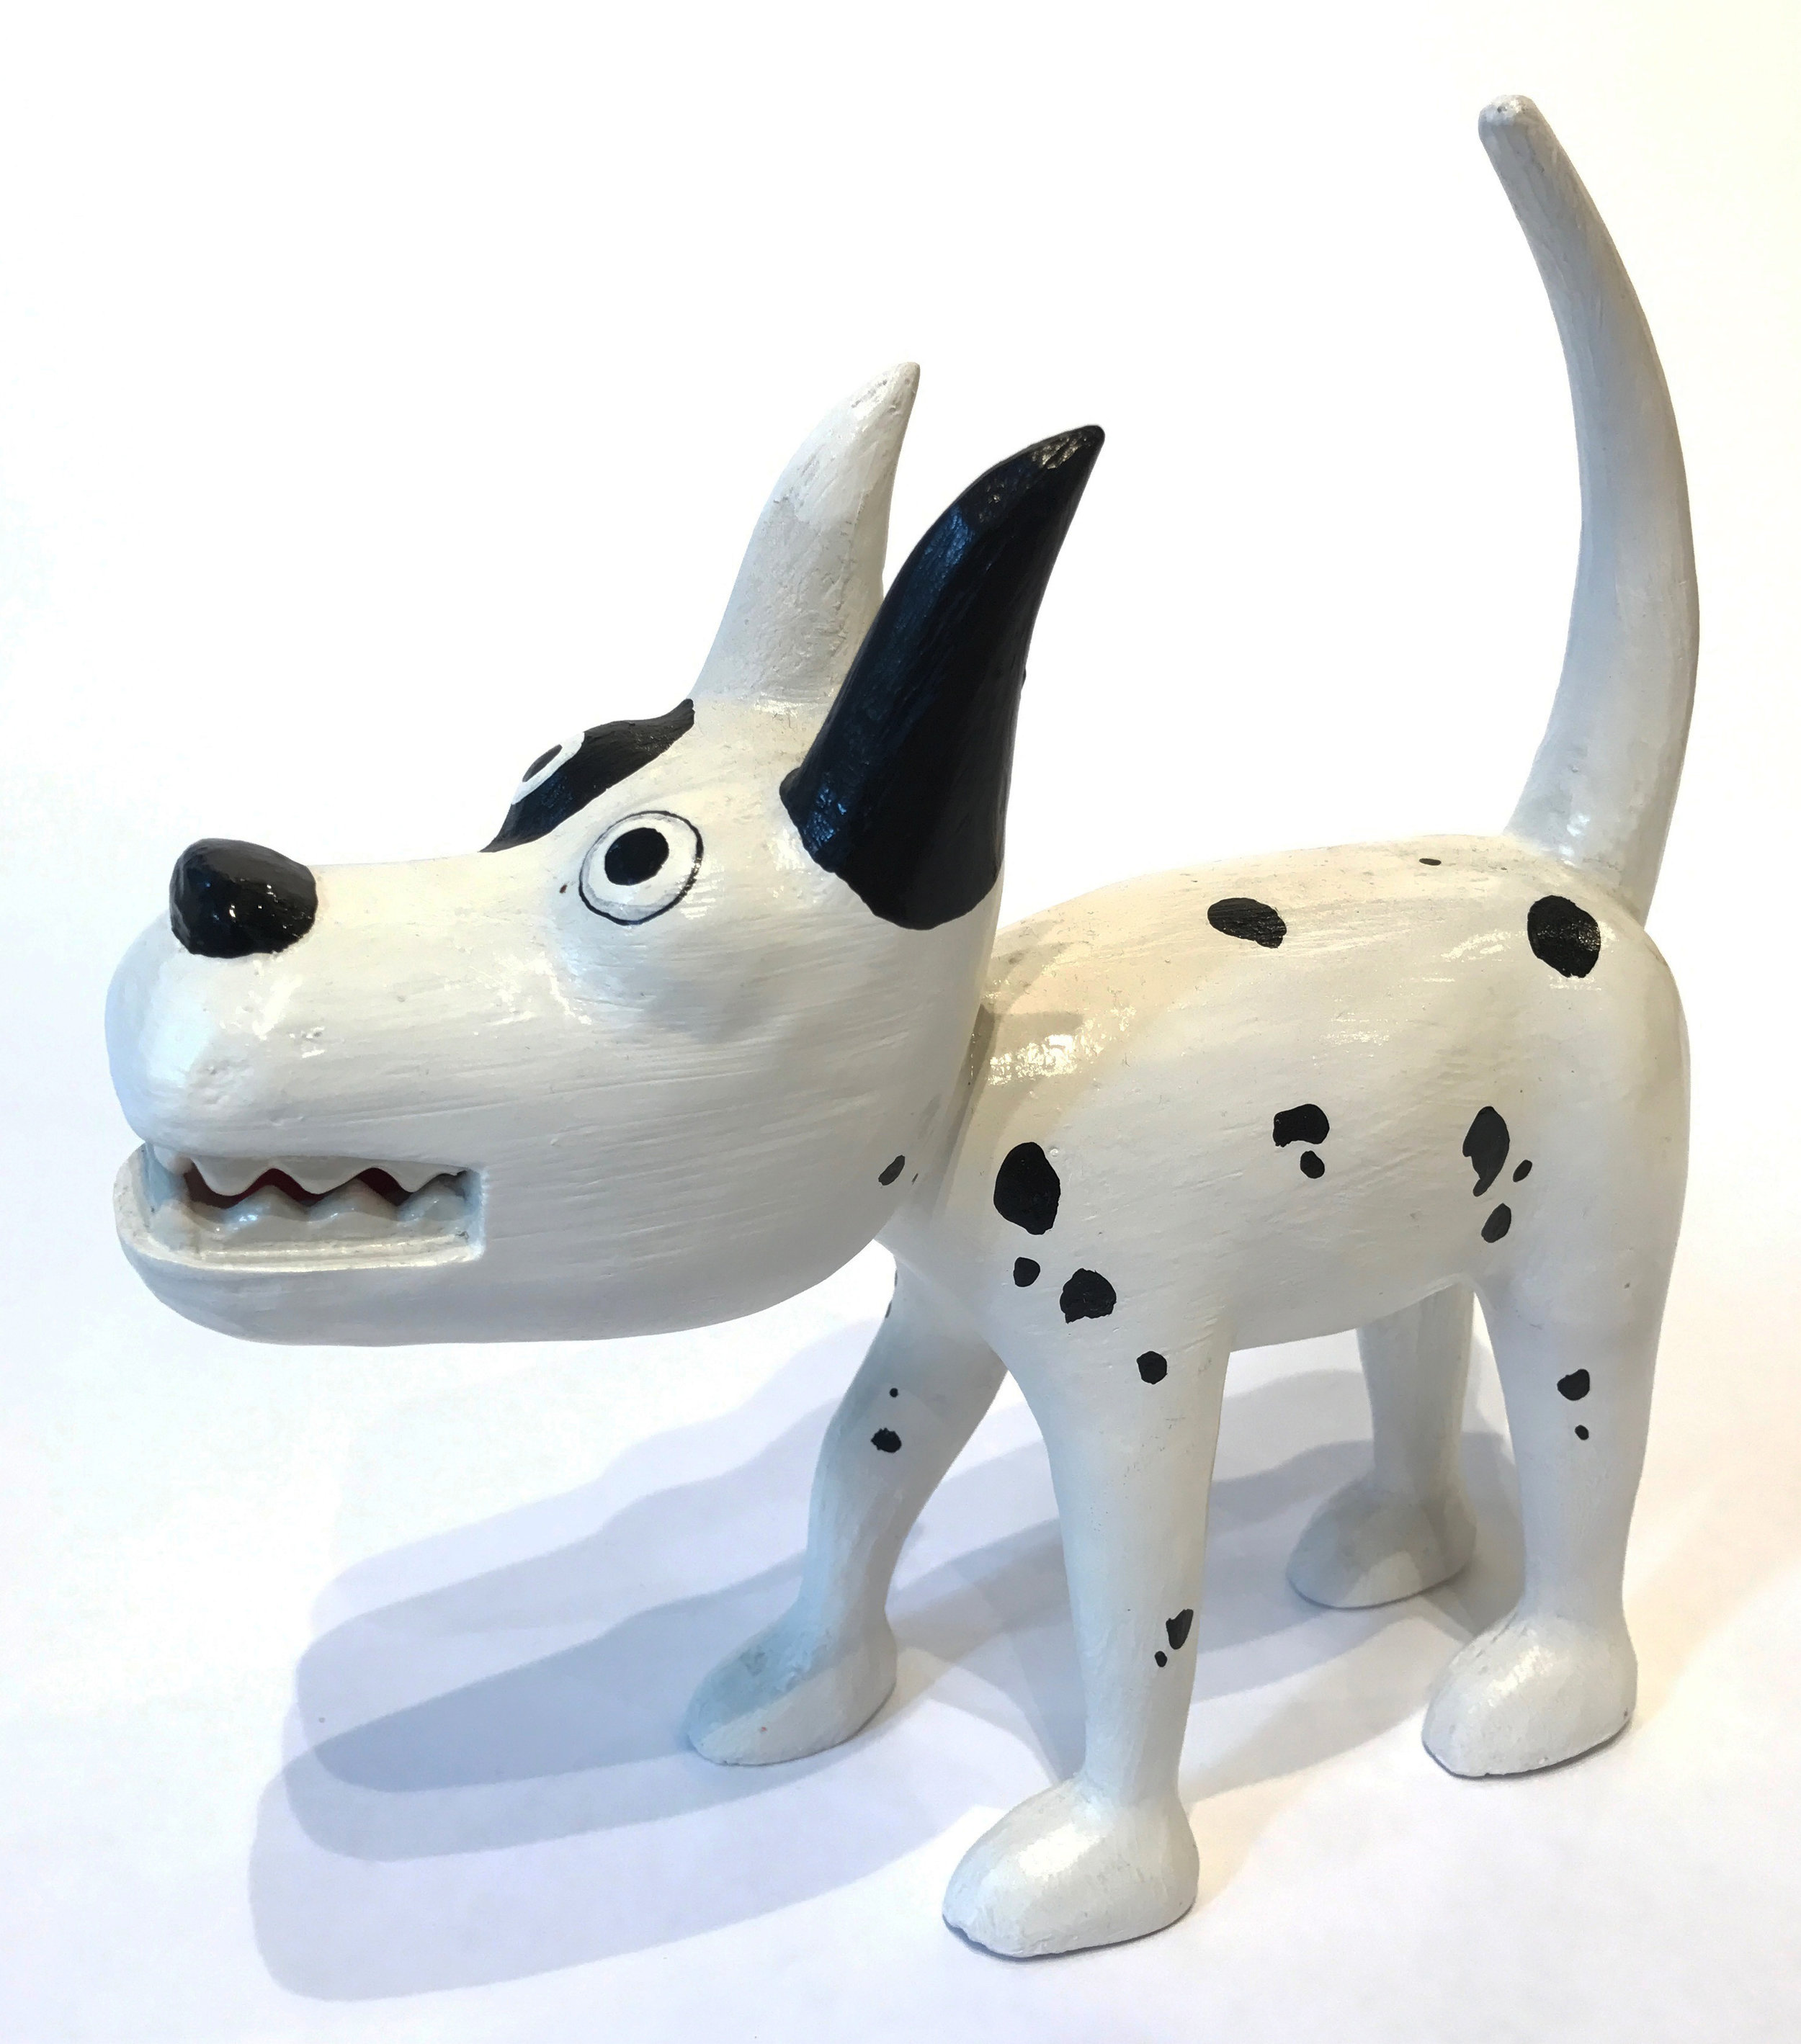 """Dog 15"" Sculpture, unique item 27 x 24 x 9 cm 2010"